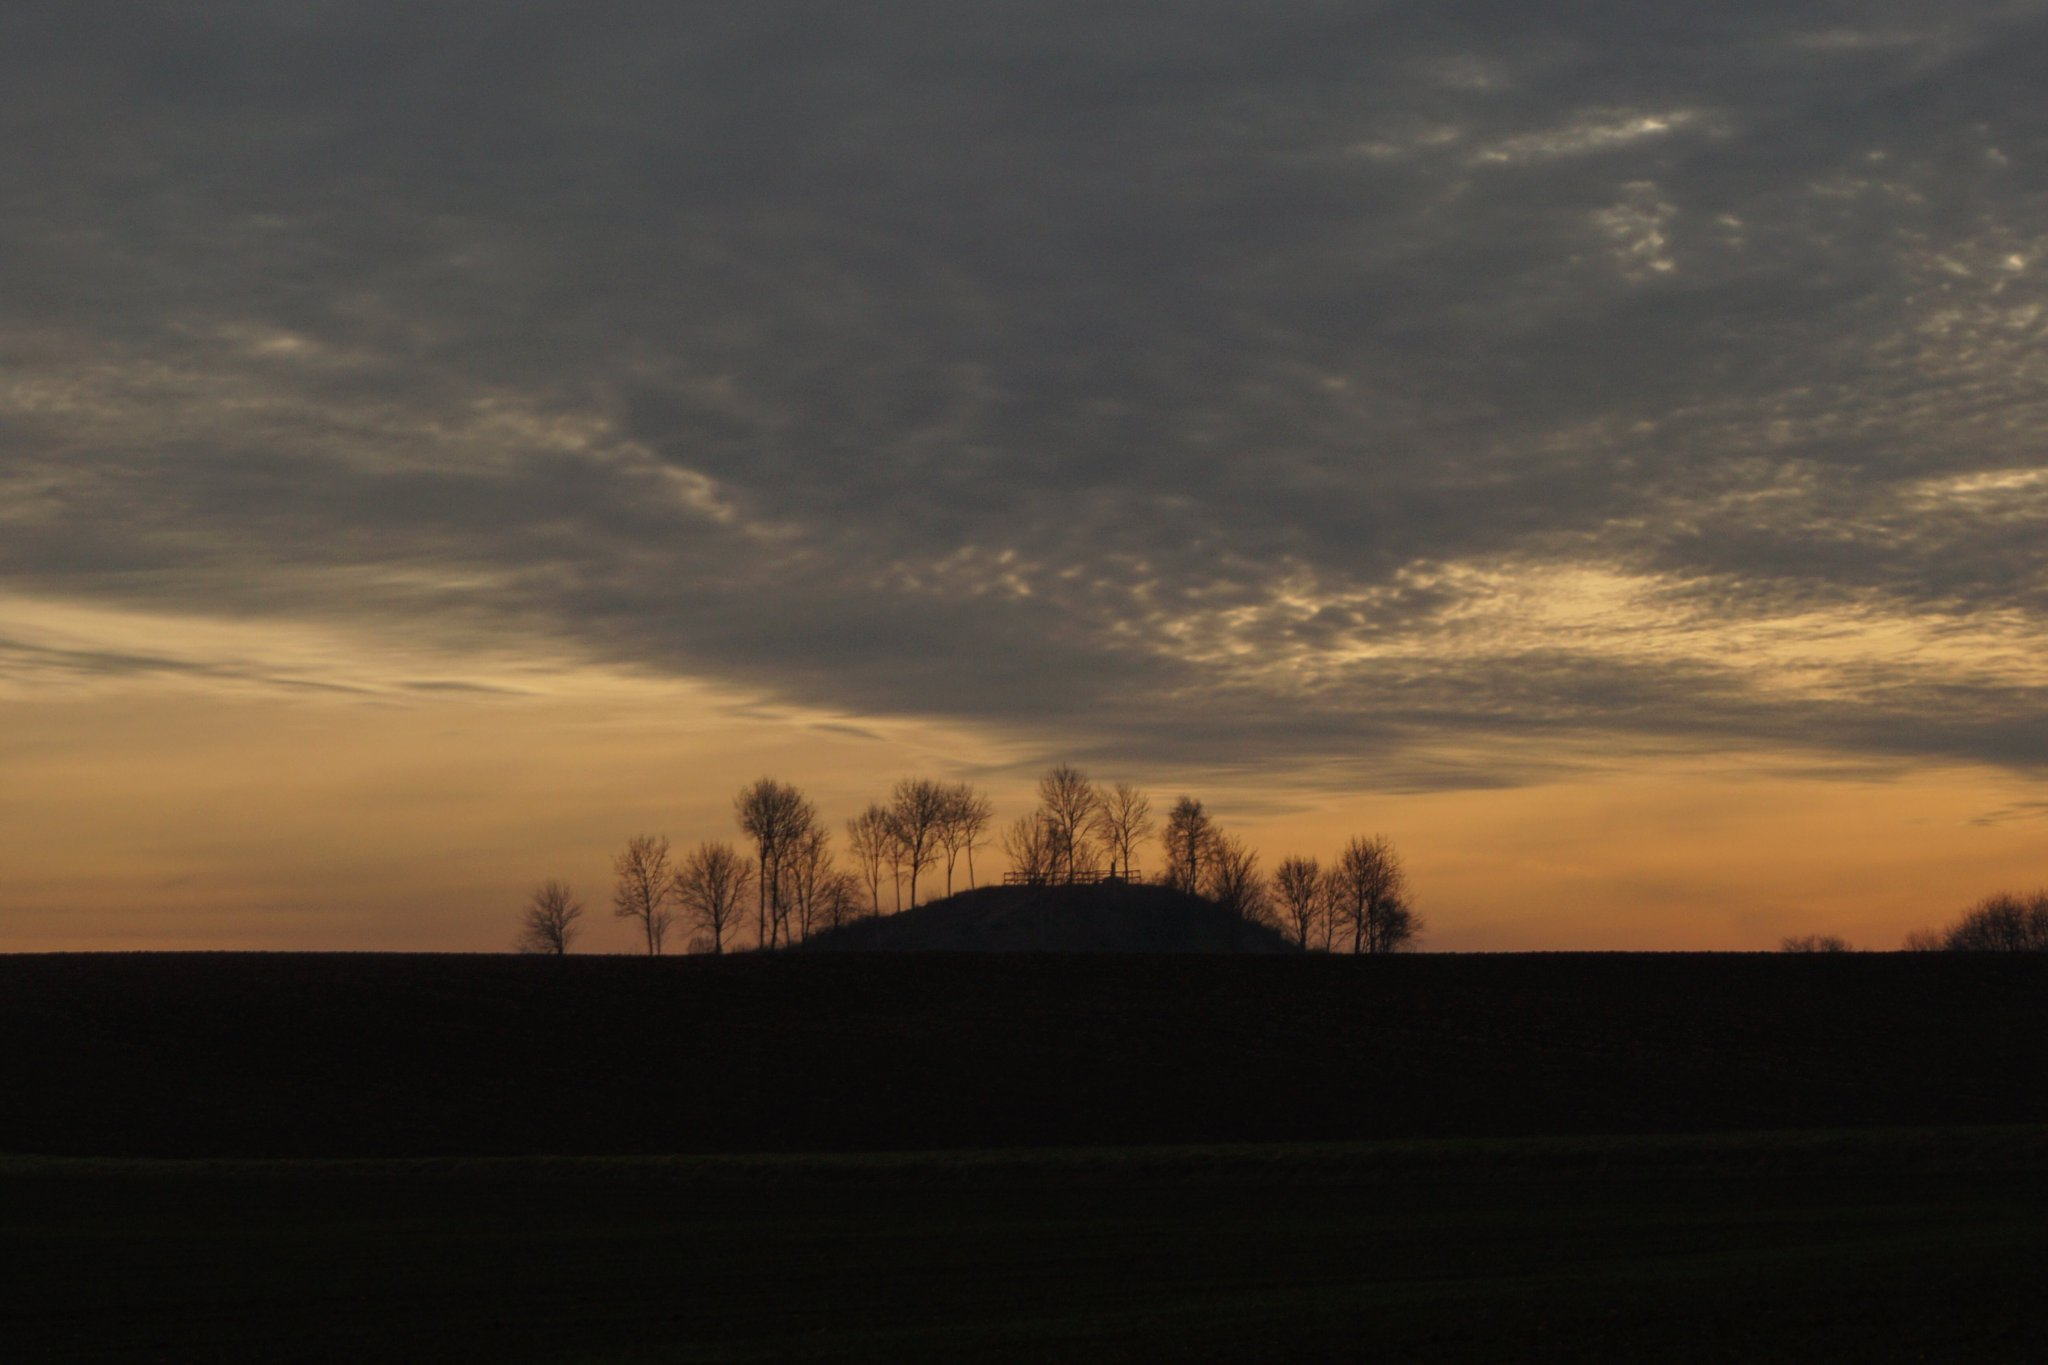 Sunset at the Butte de Warlencourt: #OTD in 1916 the Battle of the Somme officially came to an end with fighting in a wide area, including the Butte. The coldest winter of the war then followed. https://t.co/LEt2fn0QDV